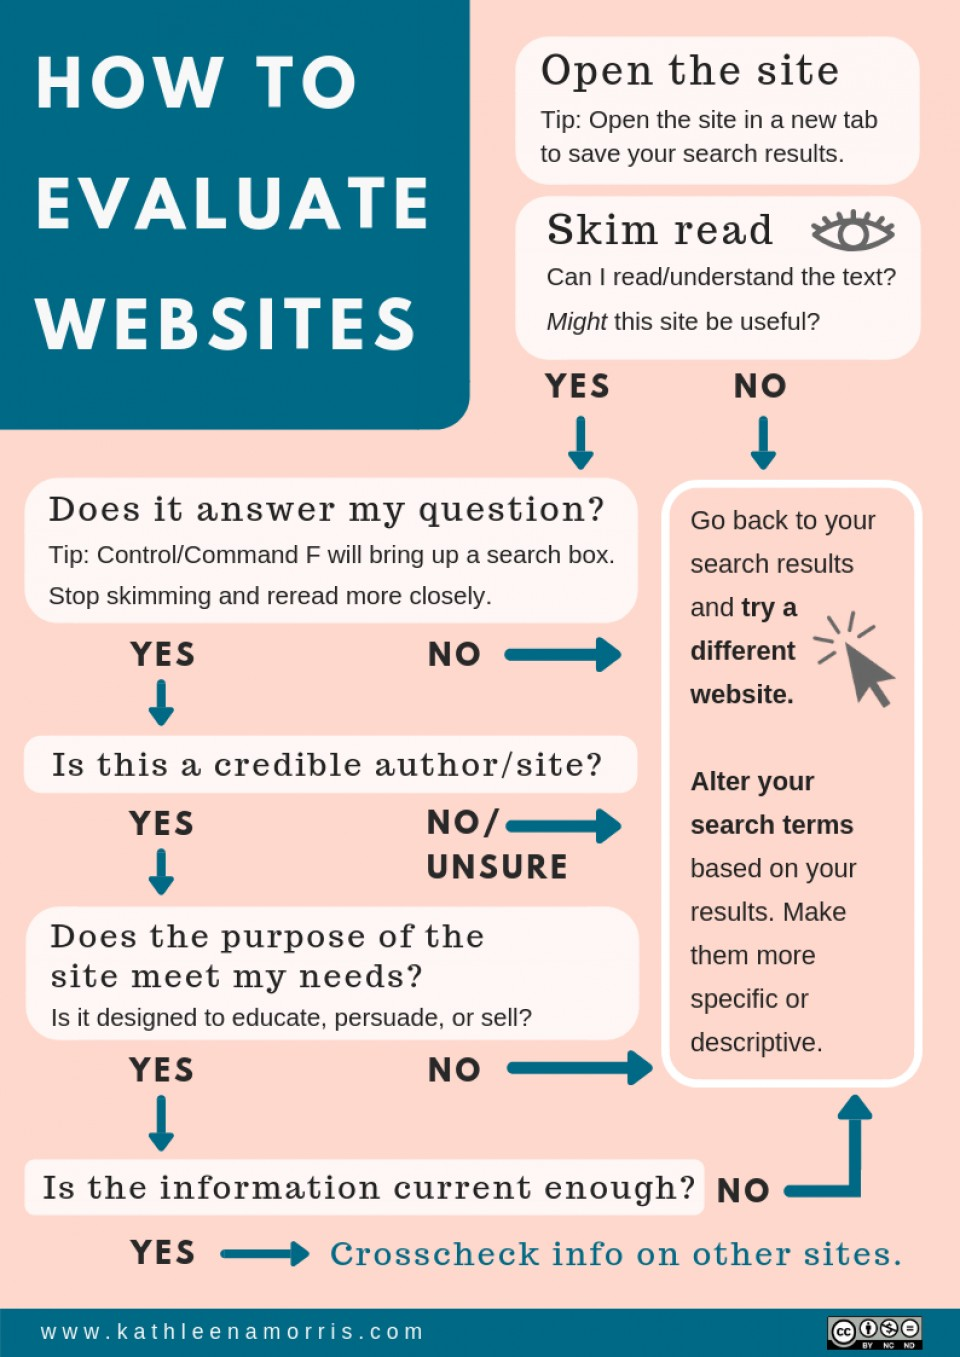 019 Research Paper Flowchart How To Evaluate Websites Kathleen Morris Vx3iho Credible For Best Papers 960